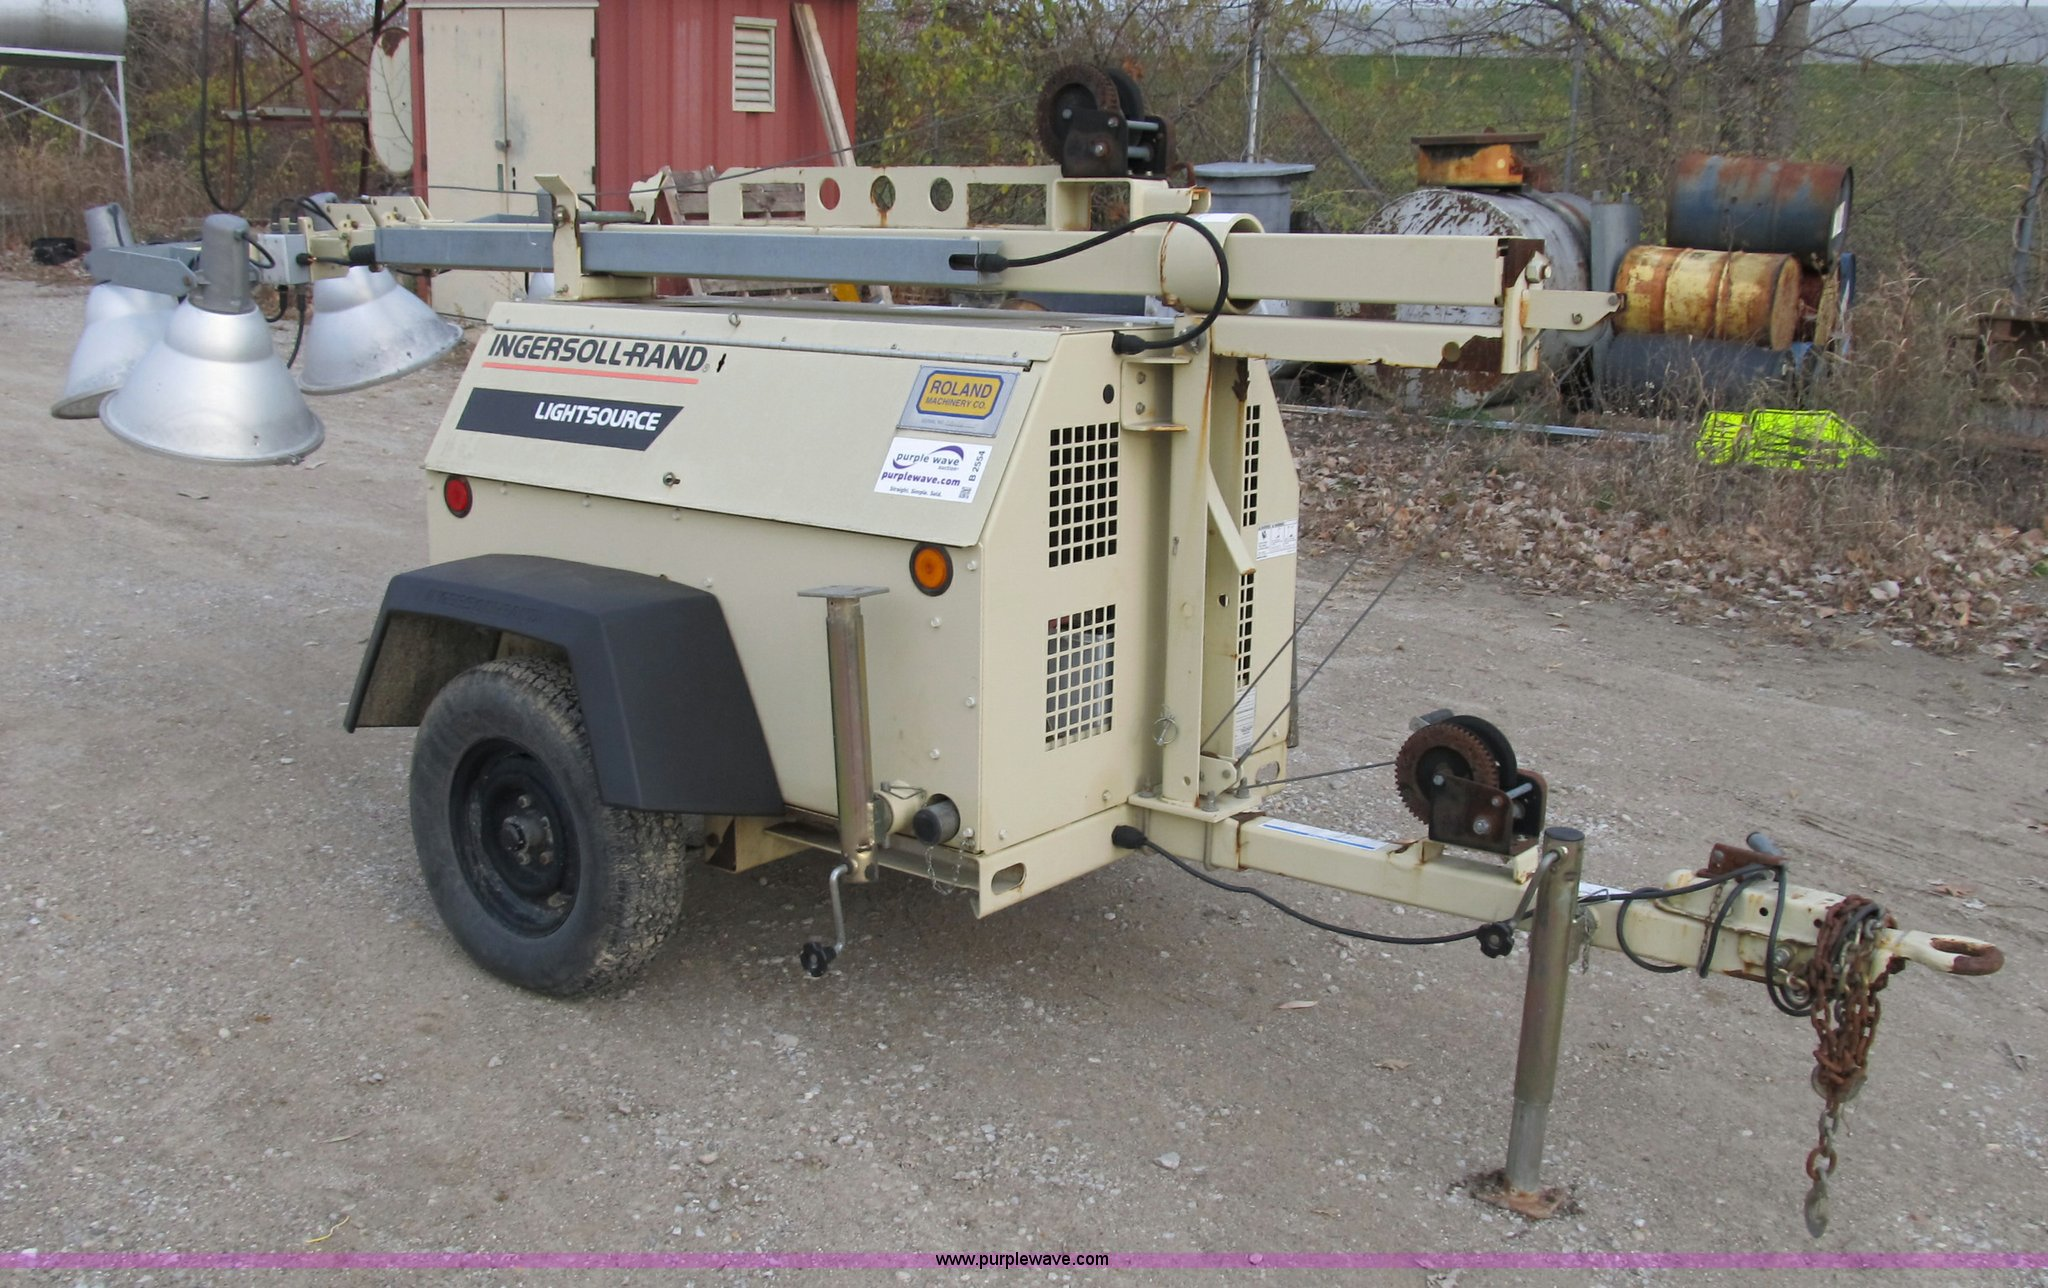 ... Ingersoll Rand Lightsource portable light tower Full size in new window  ...